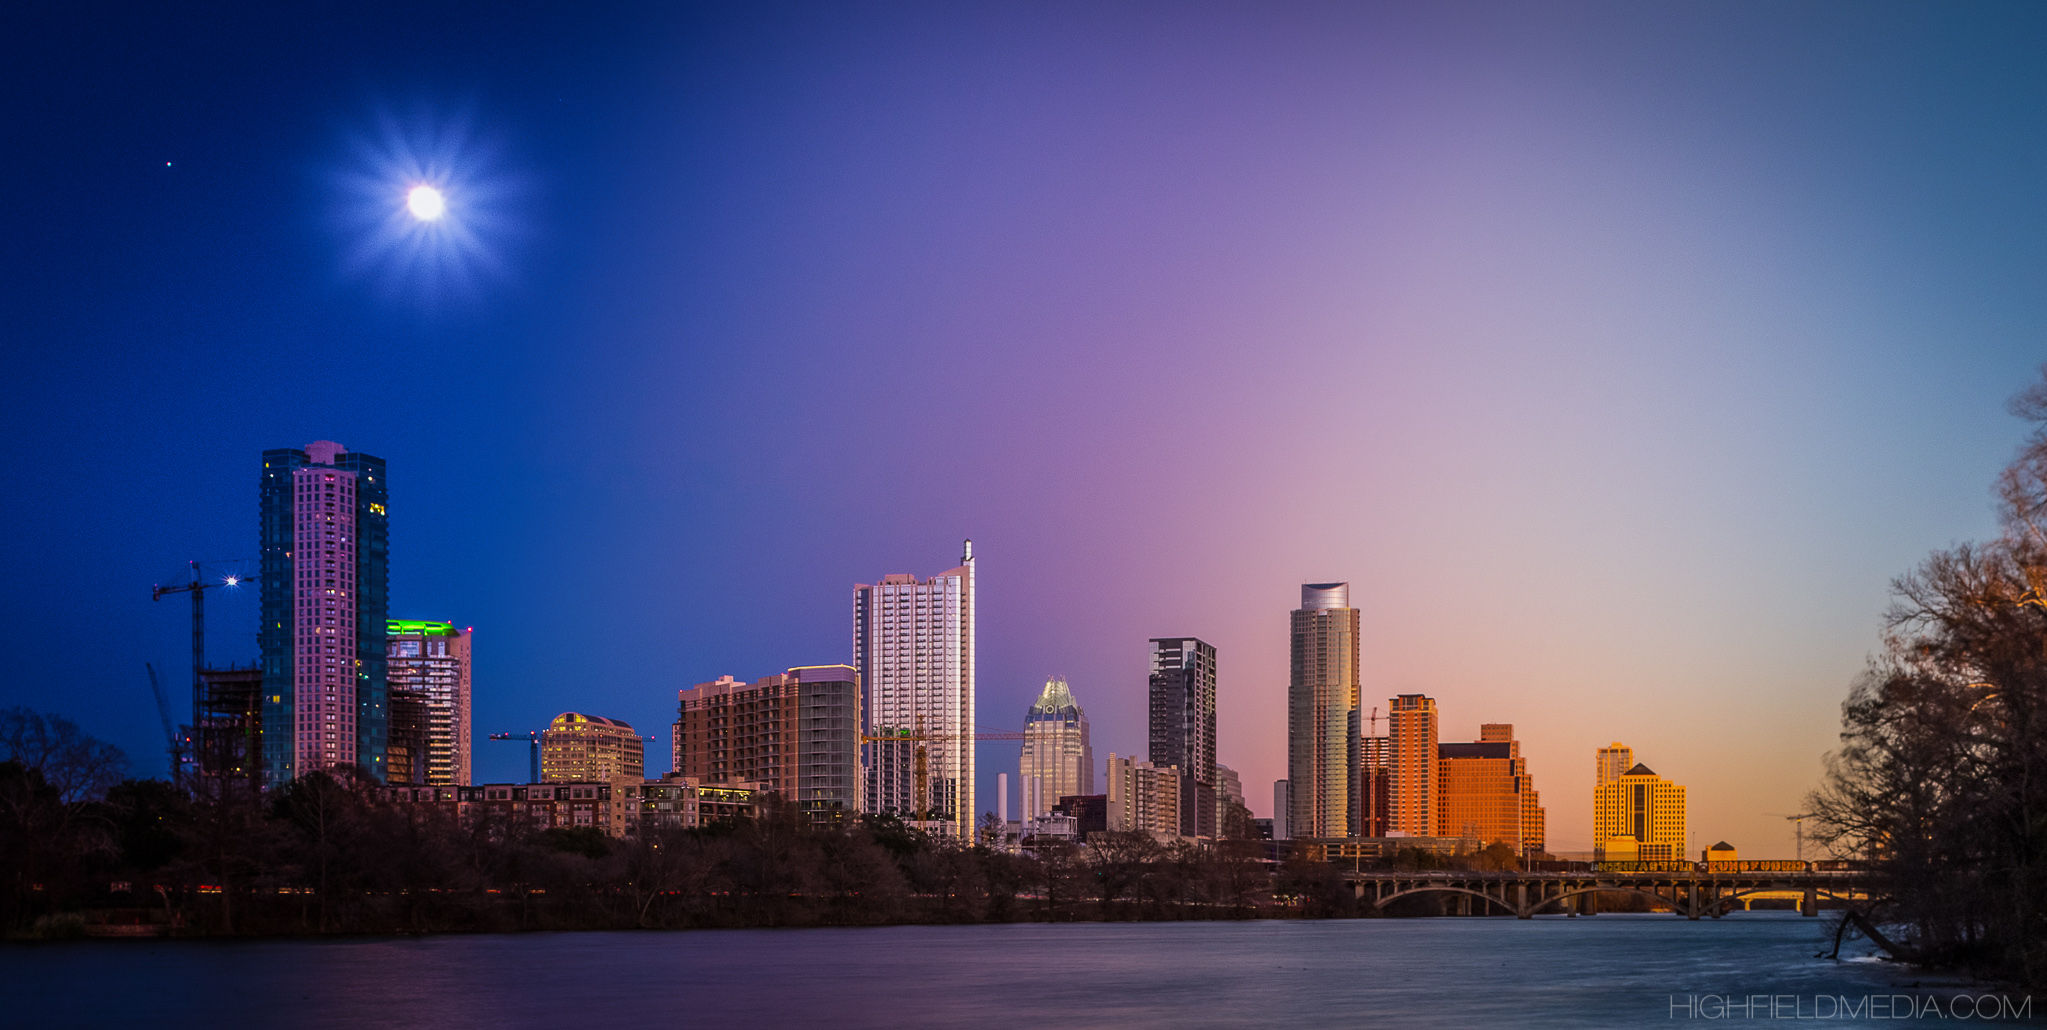 A composite image of the Austin skyline across 10 exposures in 2 hours.